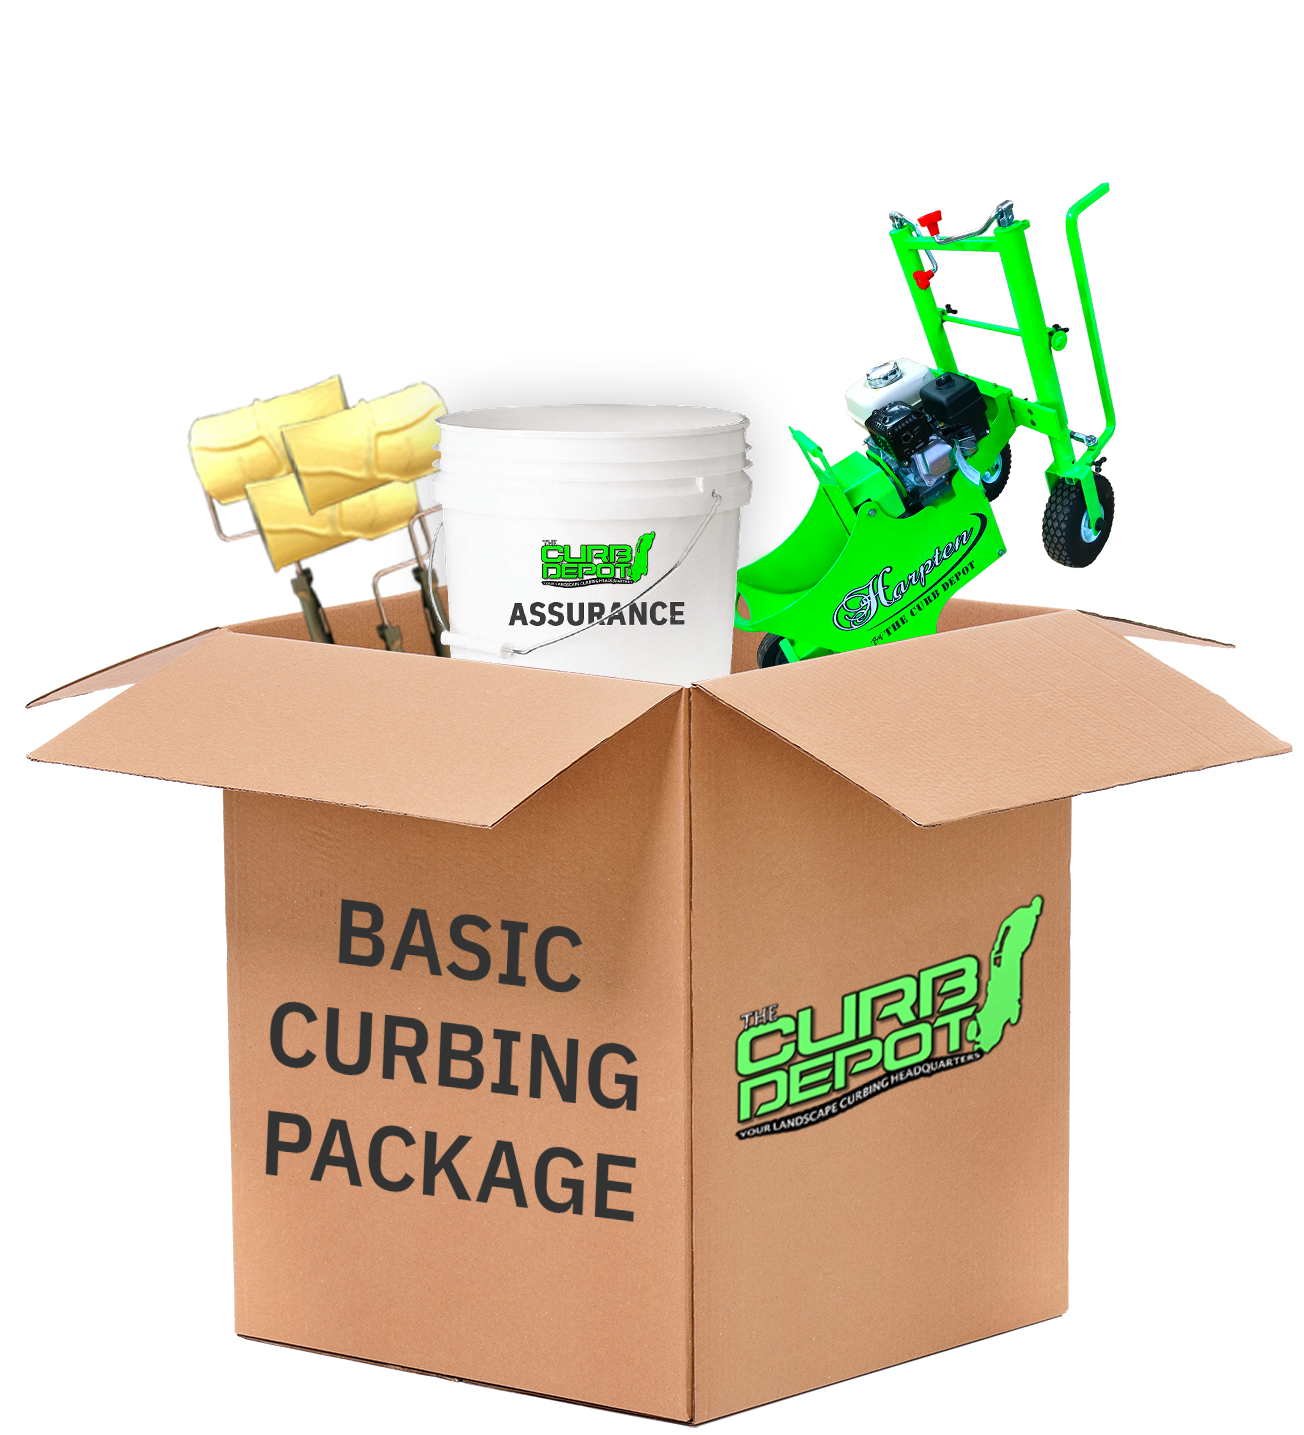 Basic curbing package